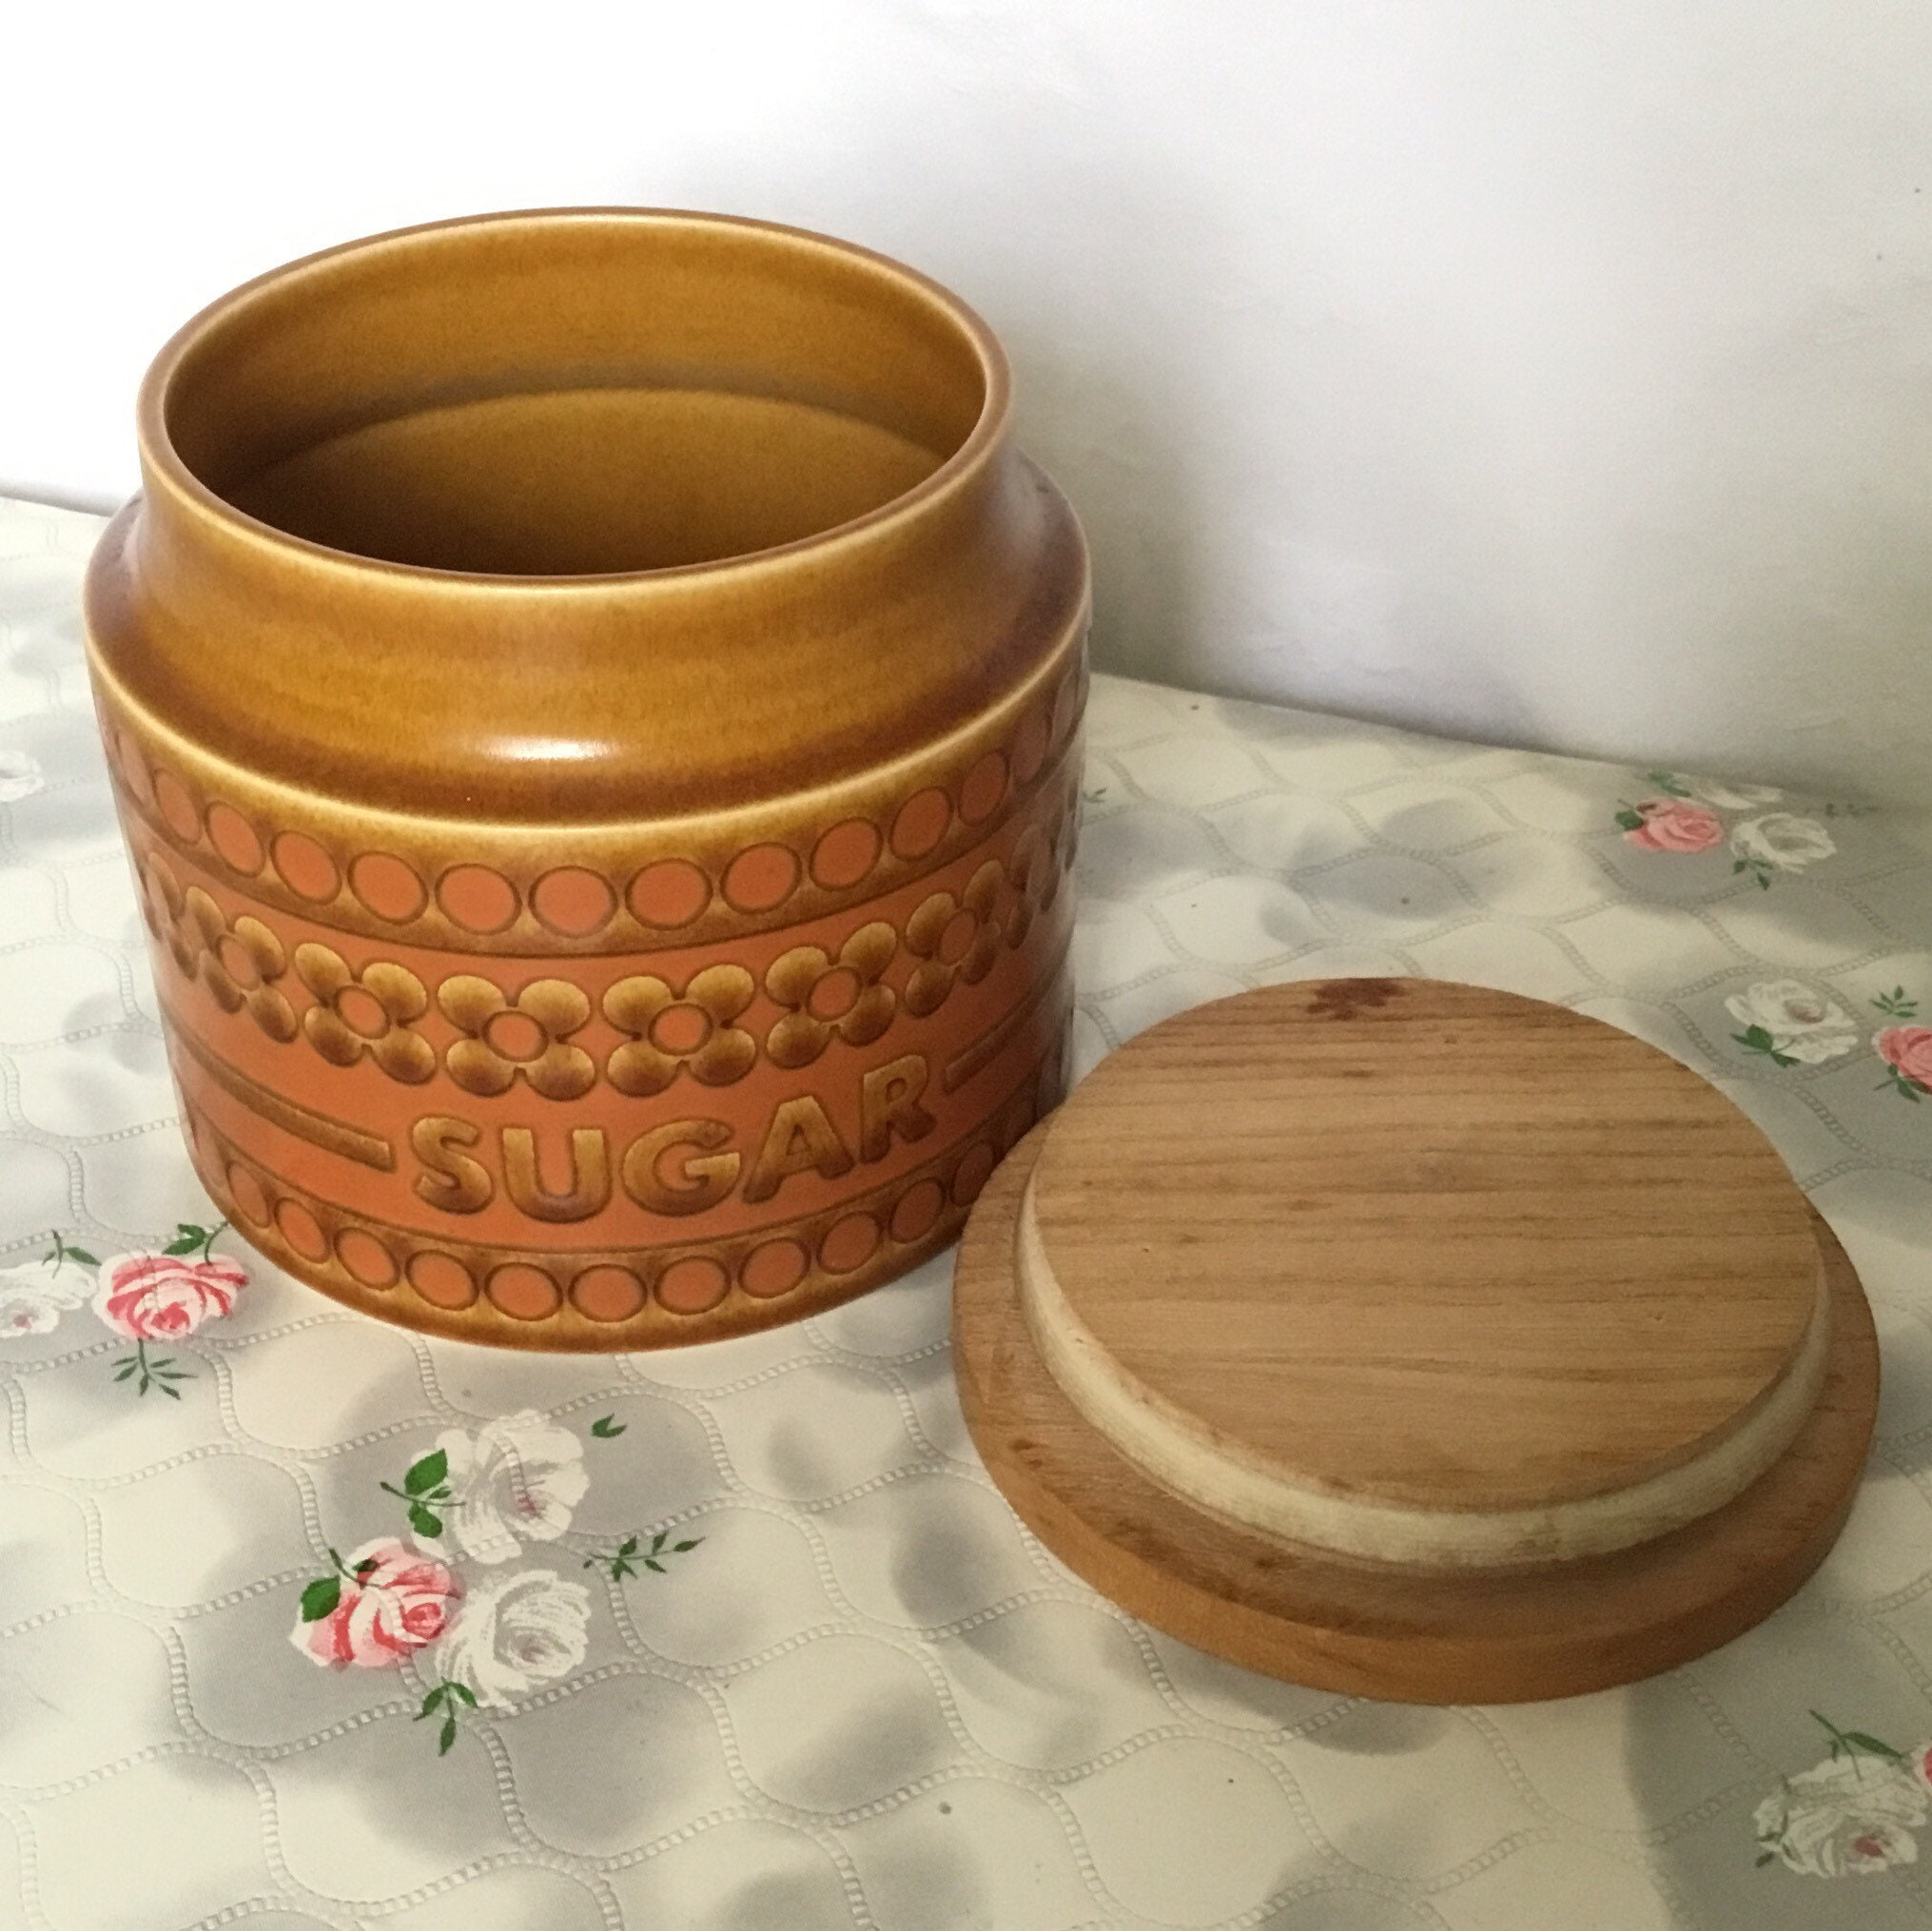 This 1977 Hornsea Saffron Sugar Canister Or Vintage Kitchen Storage